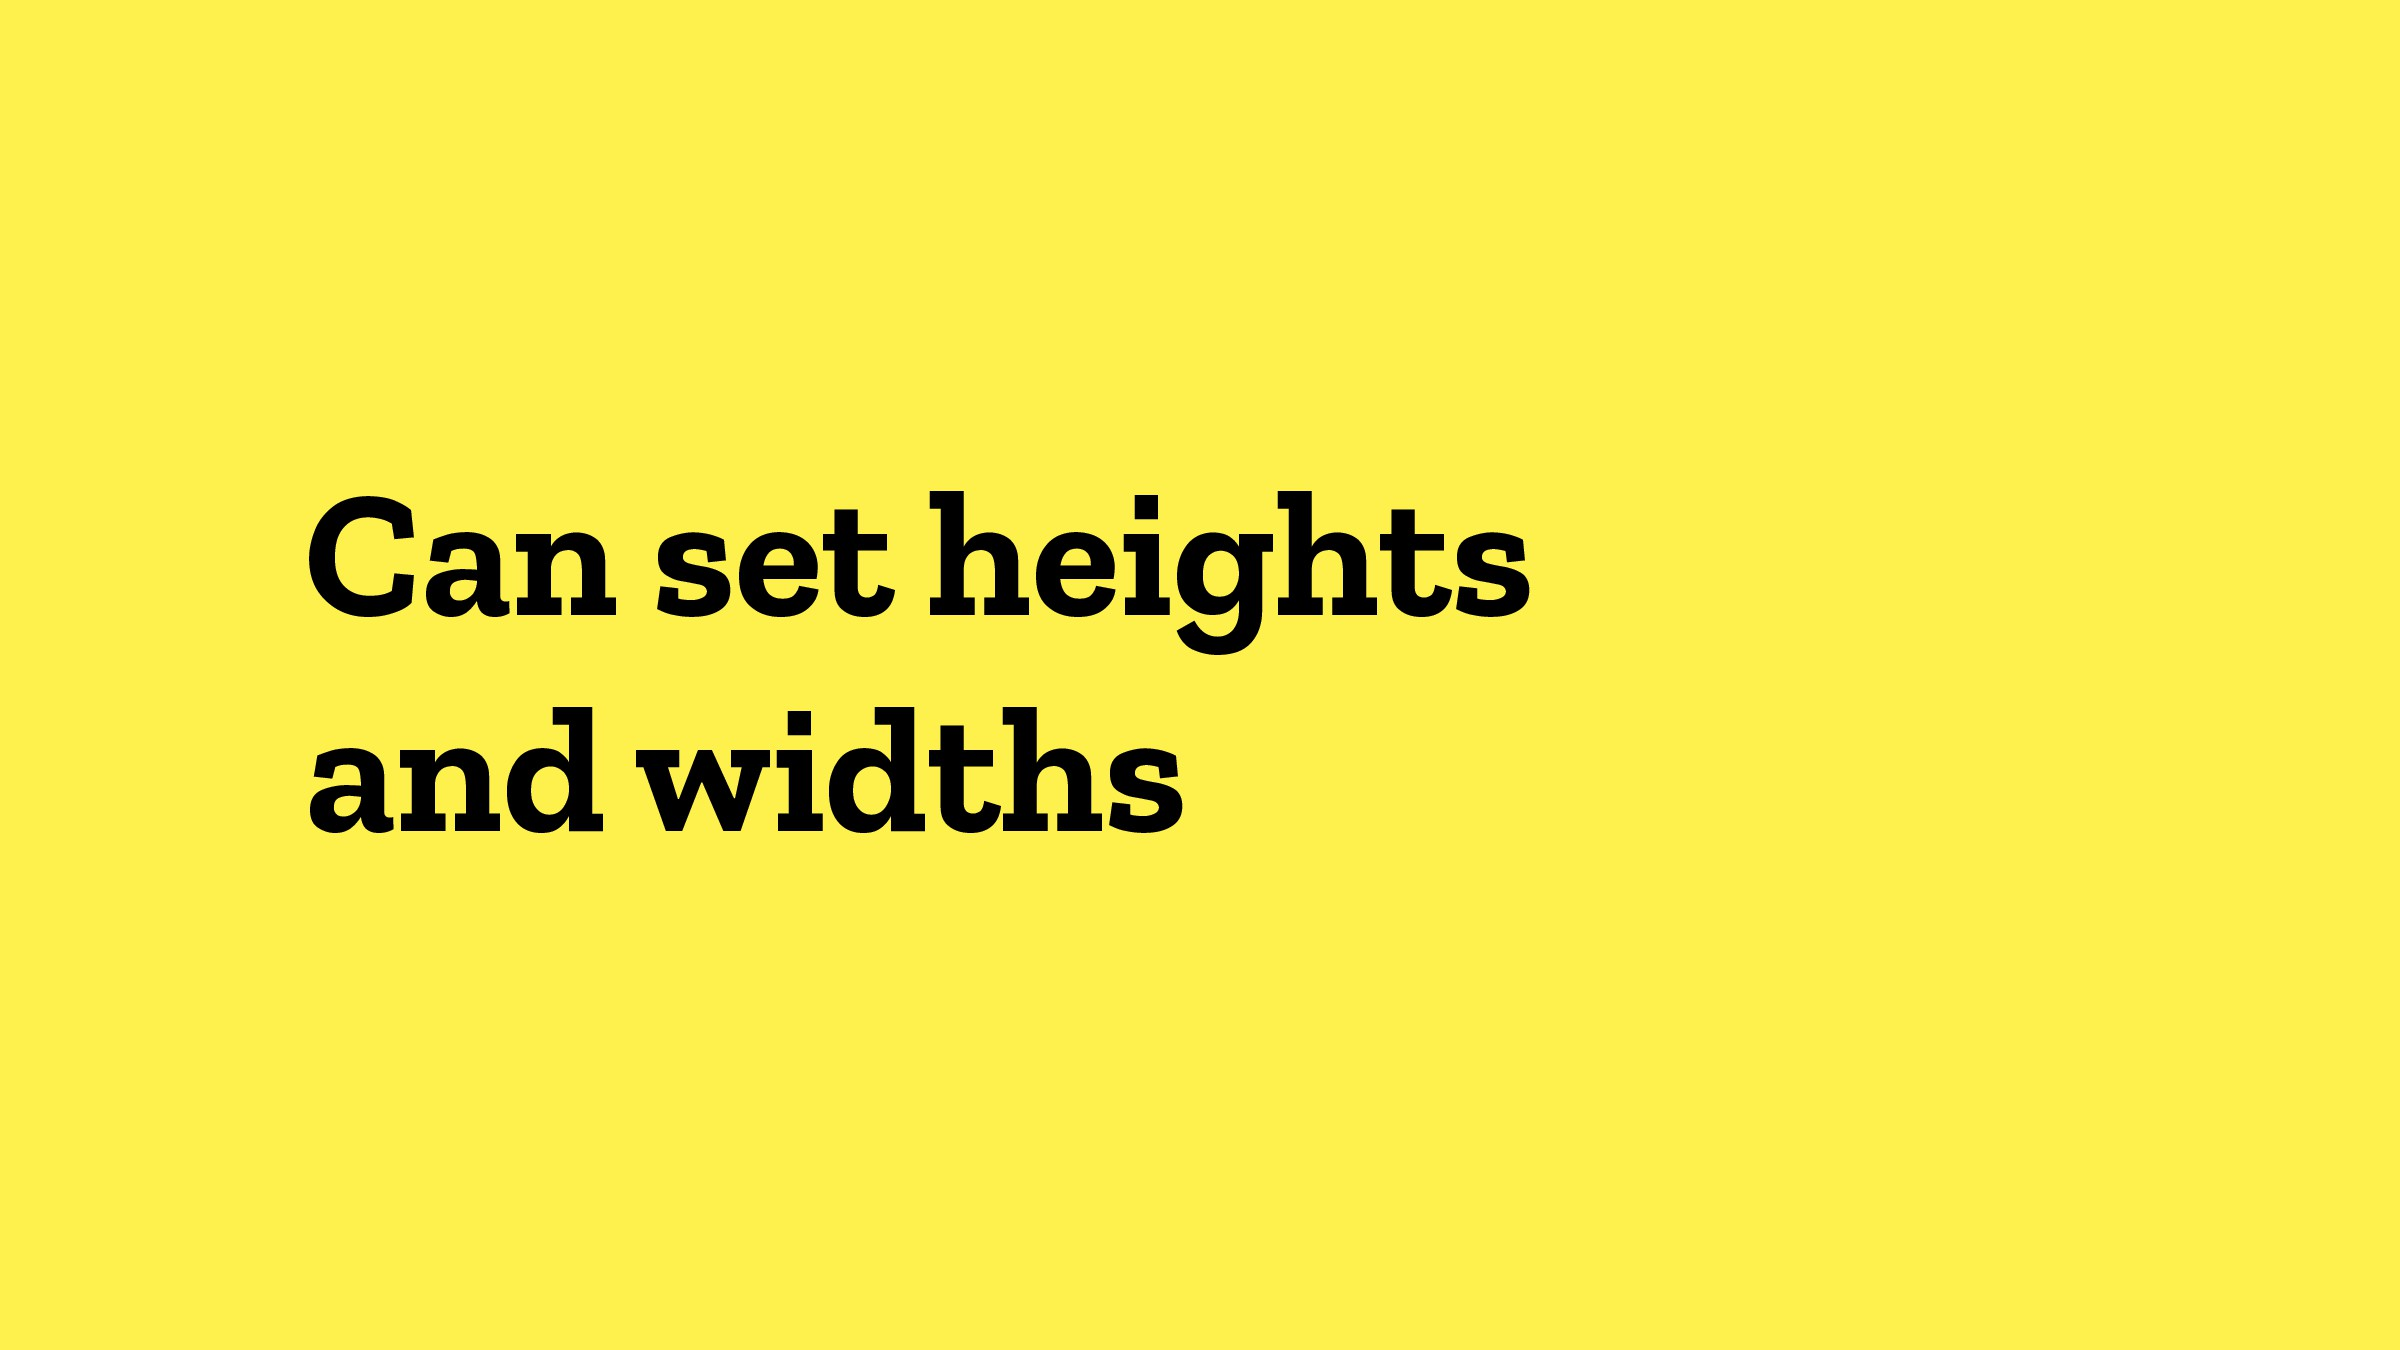 Can set heights and widths